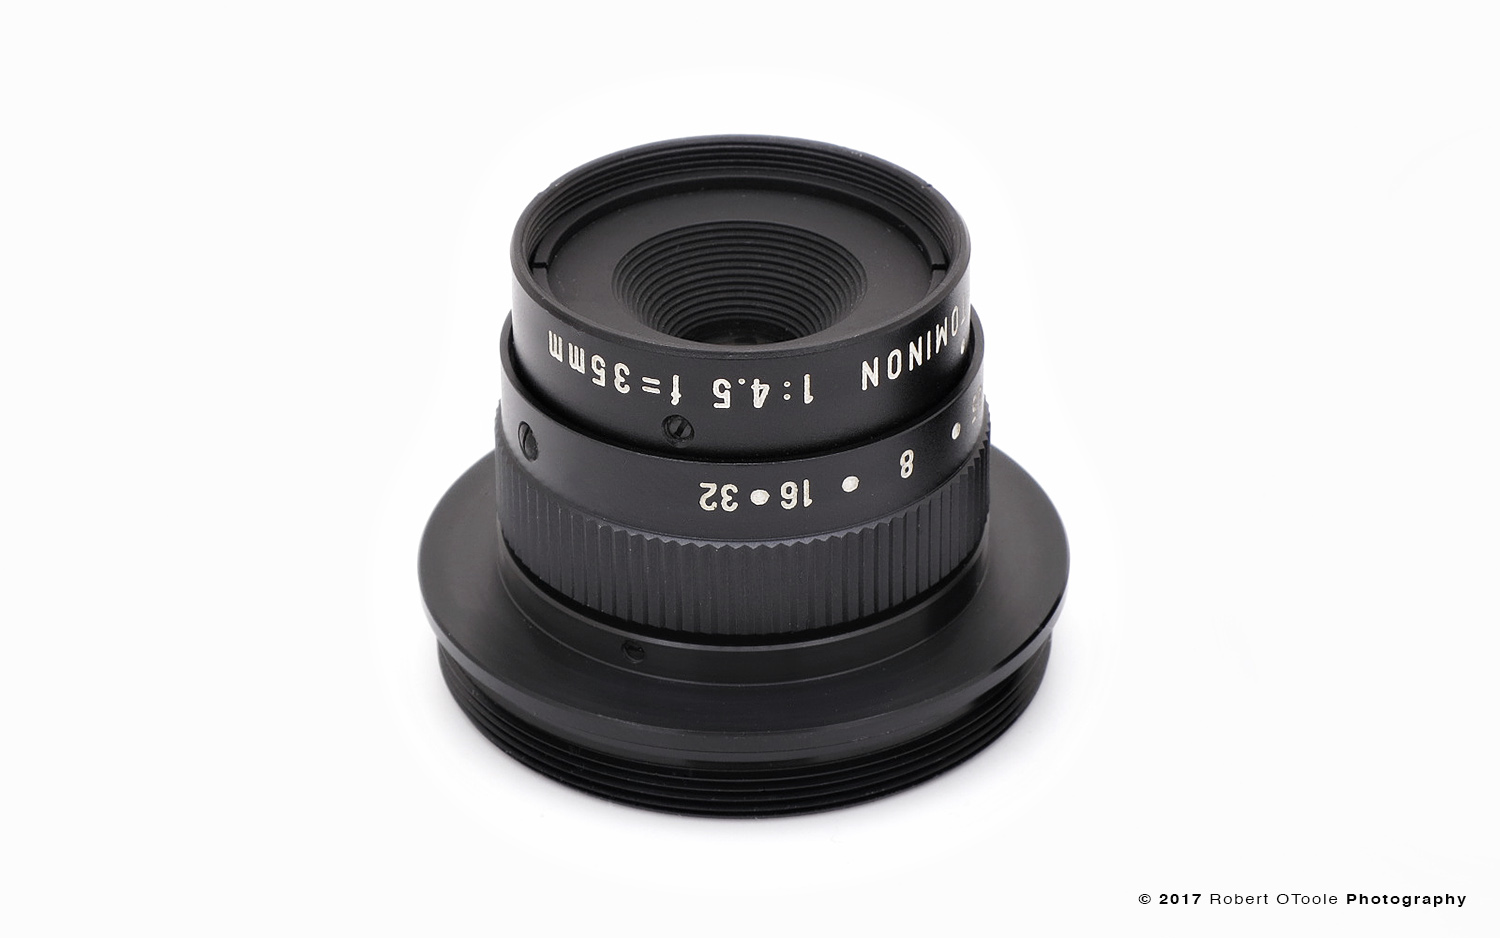 The Tominon 1:4.5 f=35mm Macro Lens